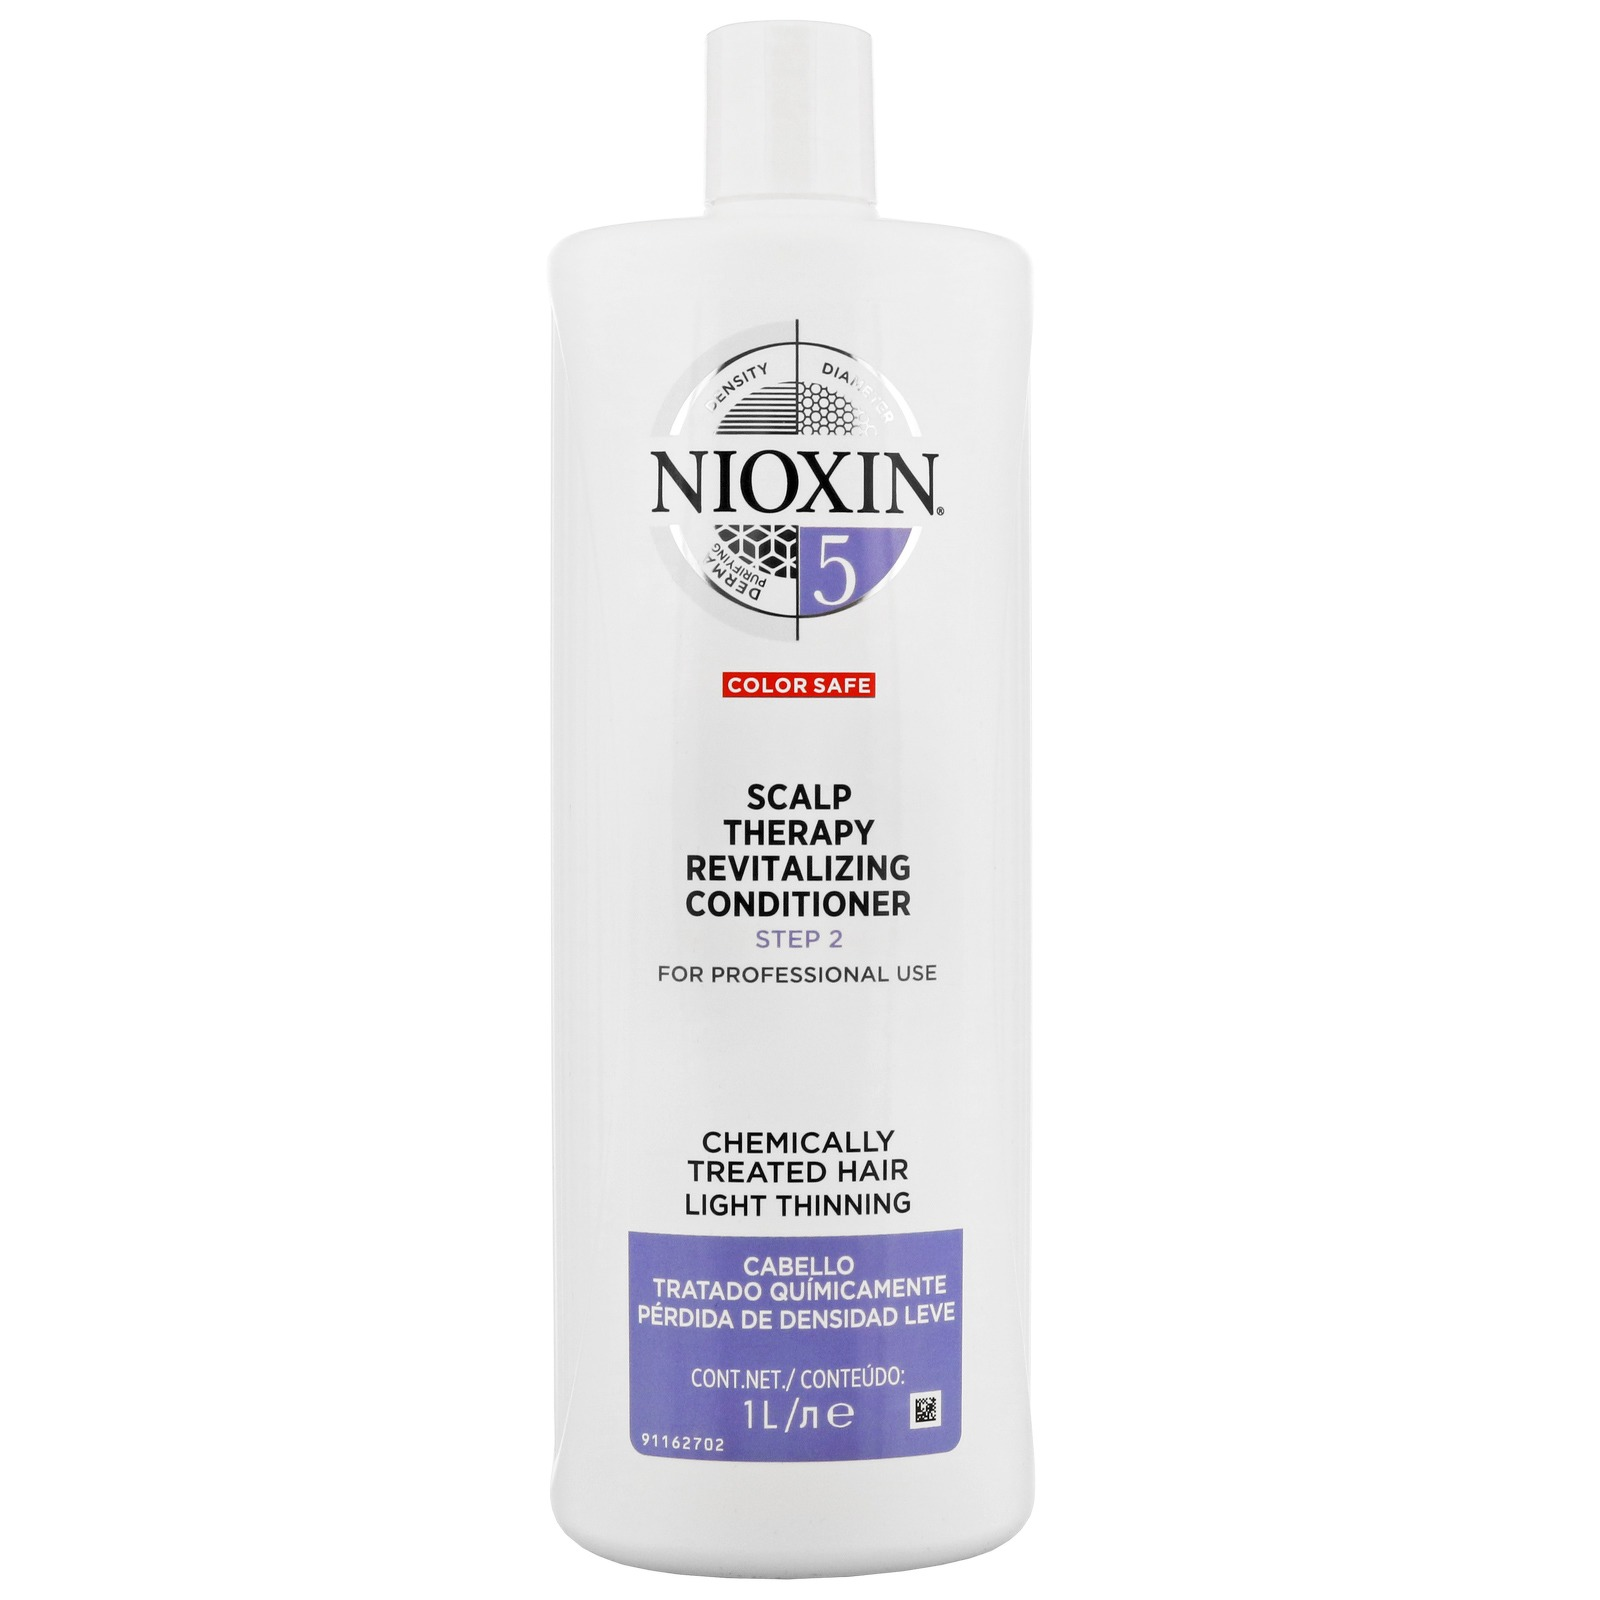 Nioxin 3D Care System  System 5 Step 2 Color Safe Scalp Therapy Revitalizing Conditioner: For Chemically Treated Hair And Light Thinning 1000ml